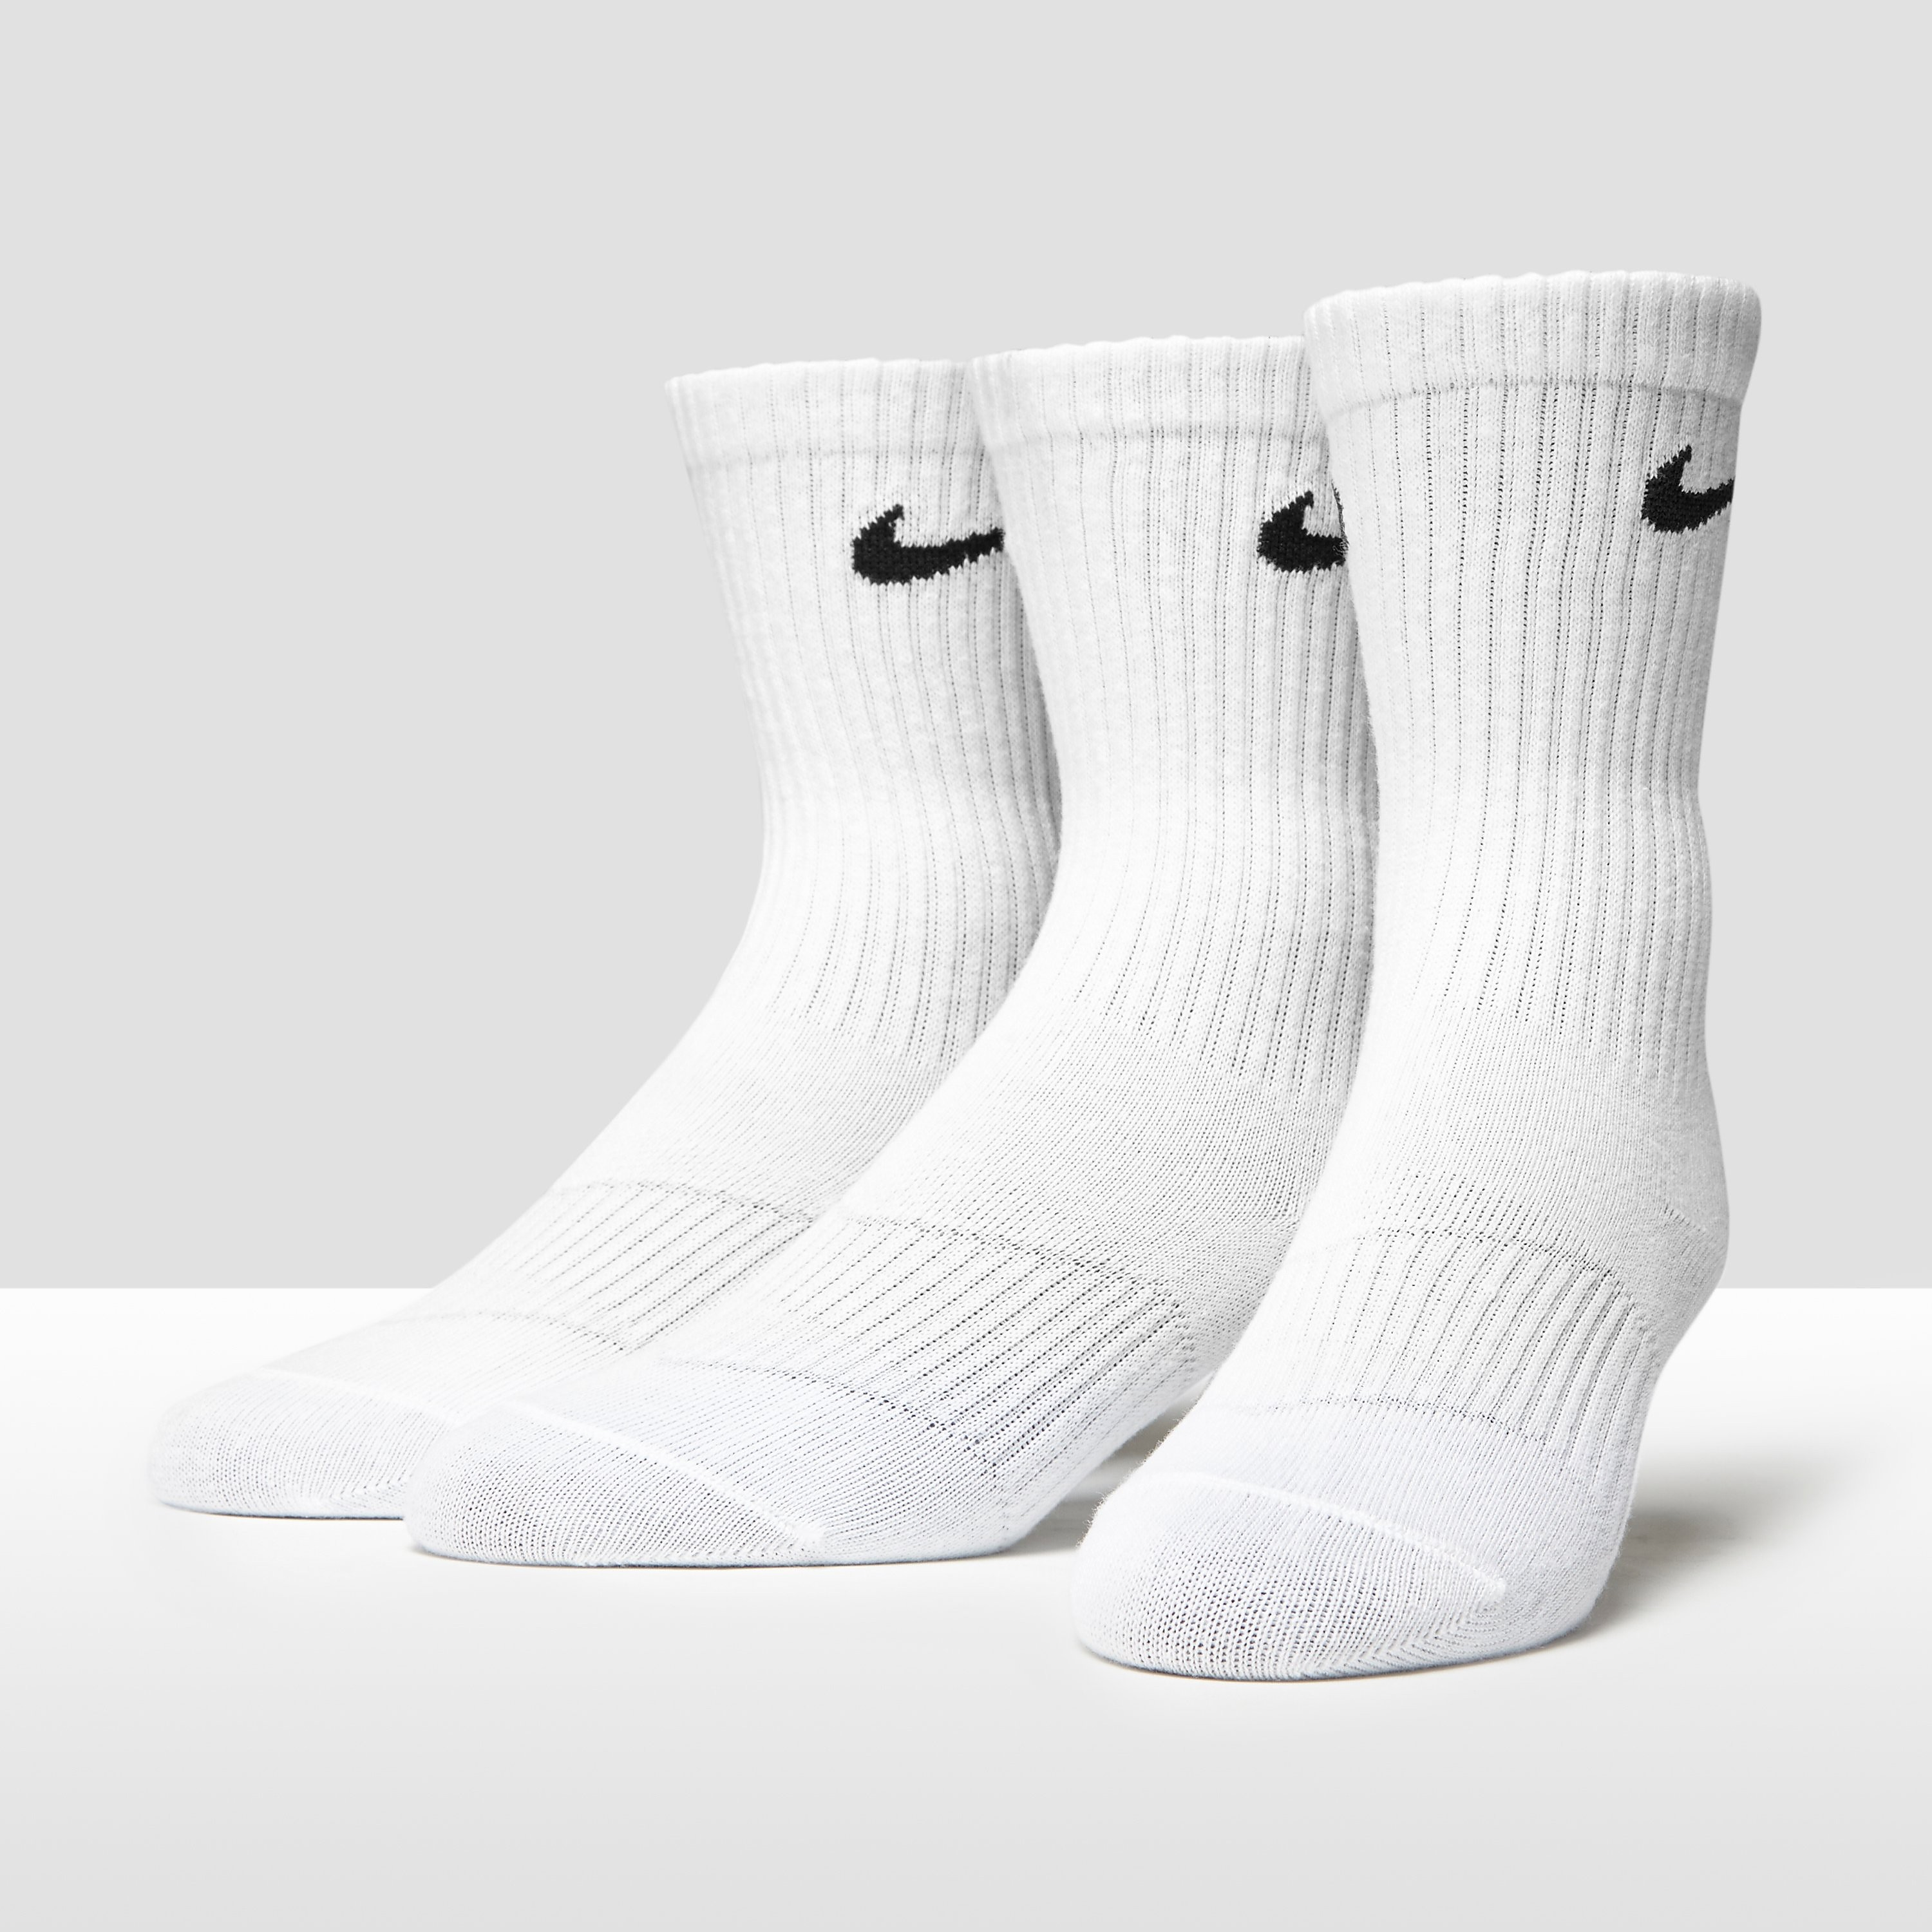 Nike Men's Lightweight Crew Socks (Pack of 3)